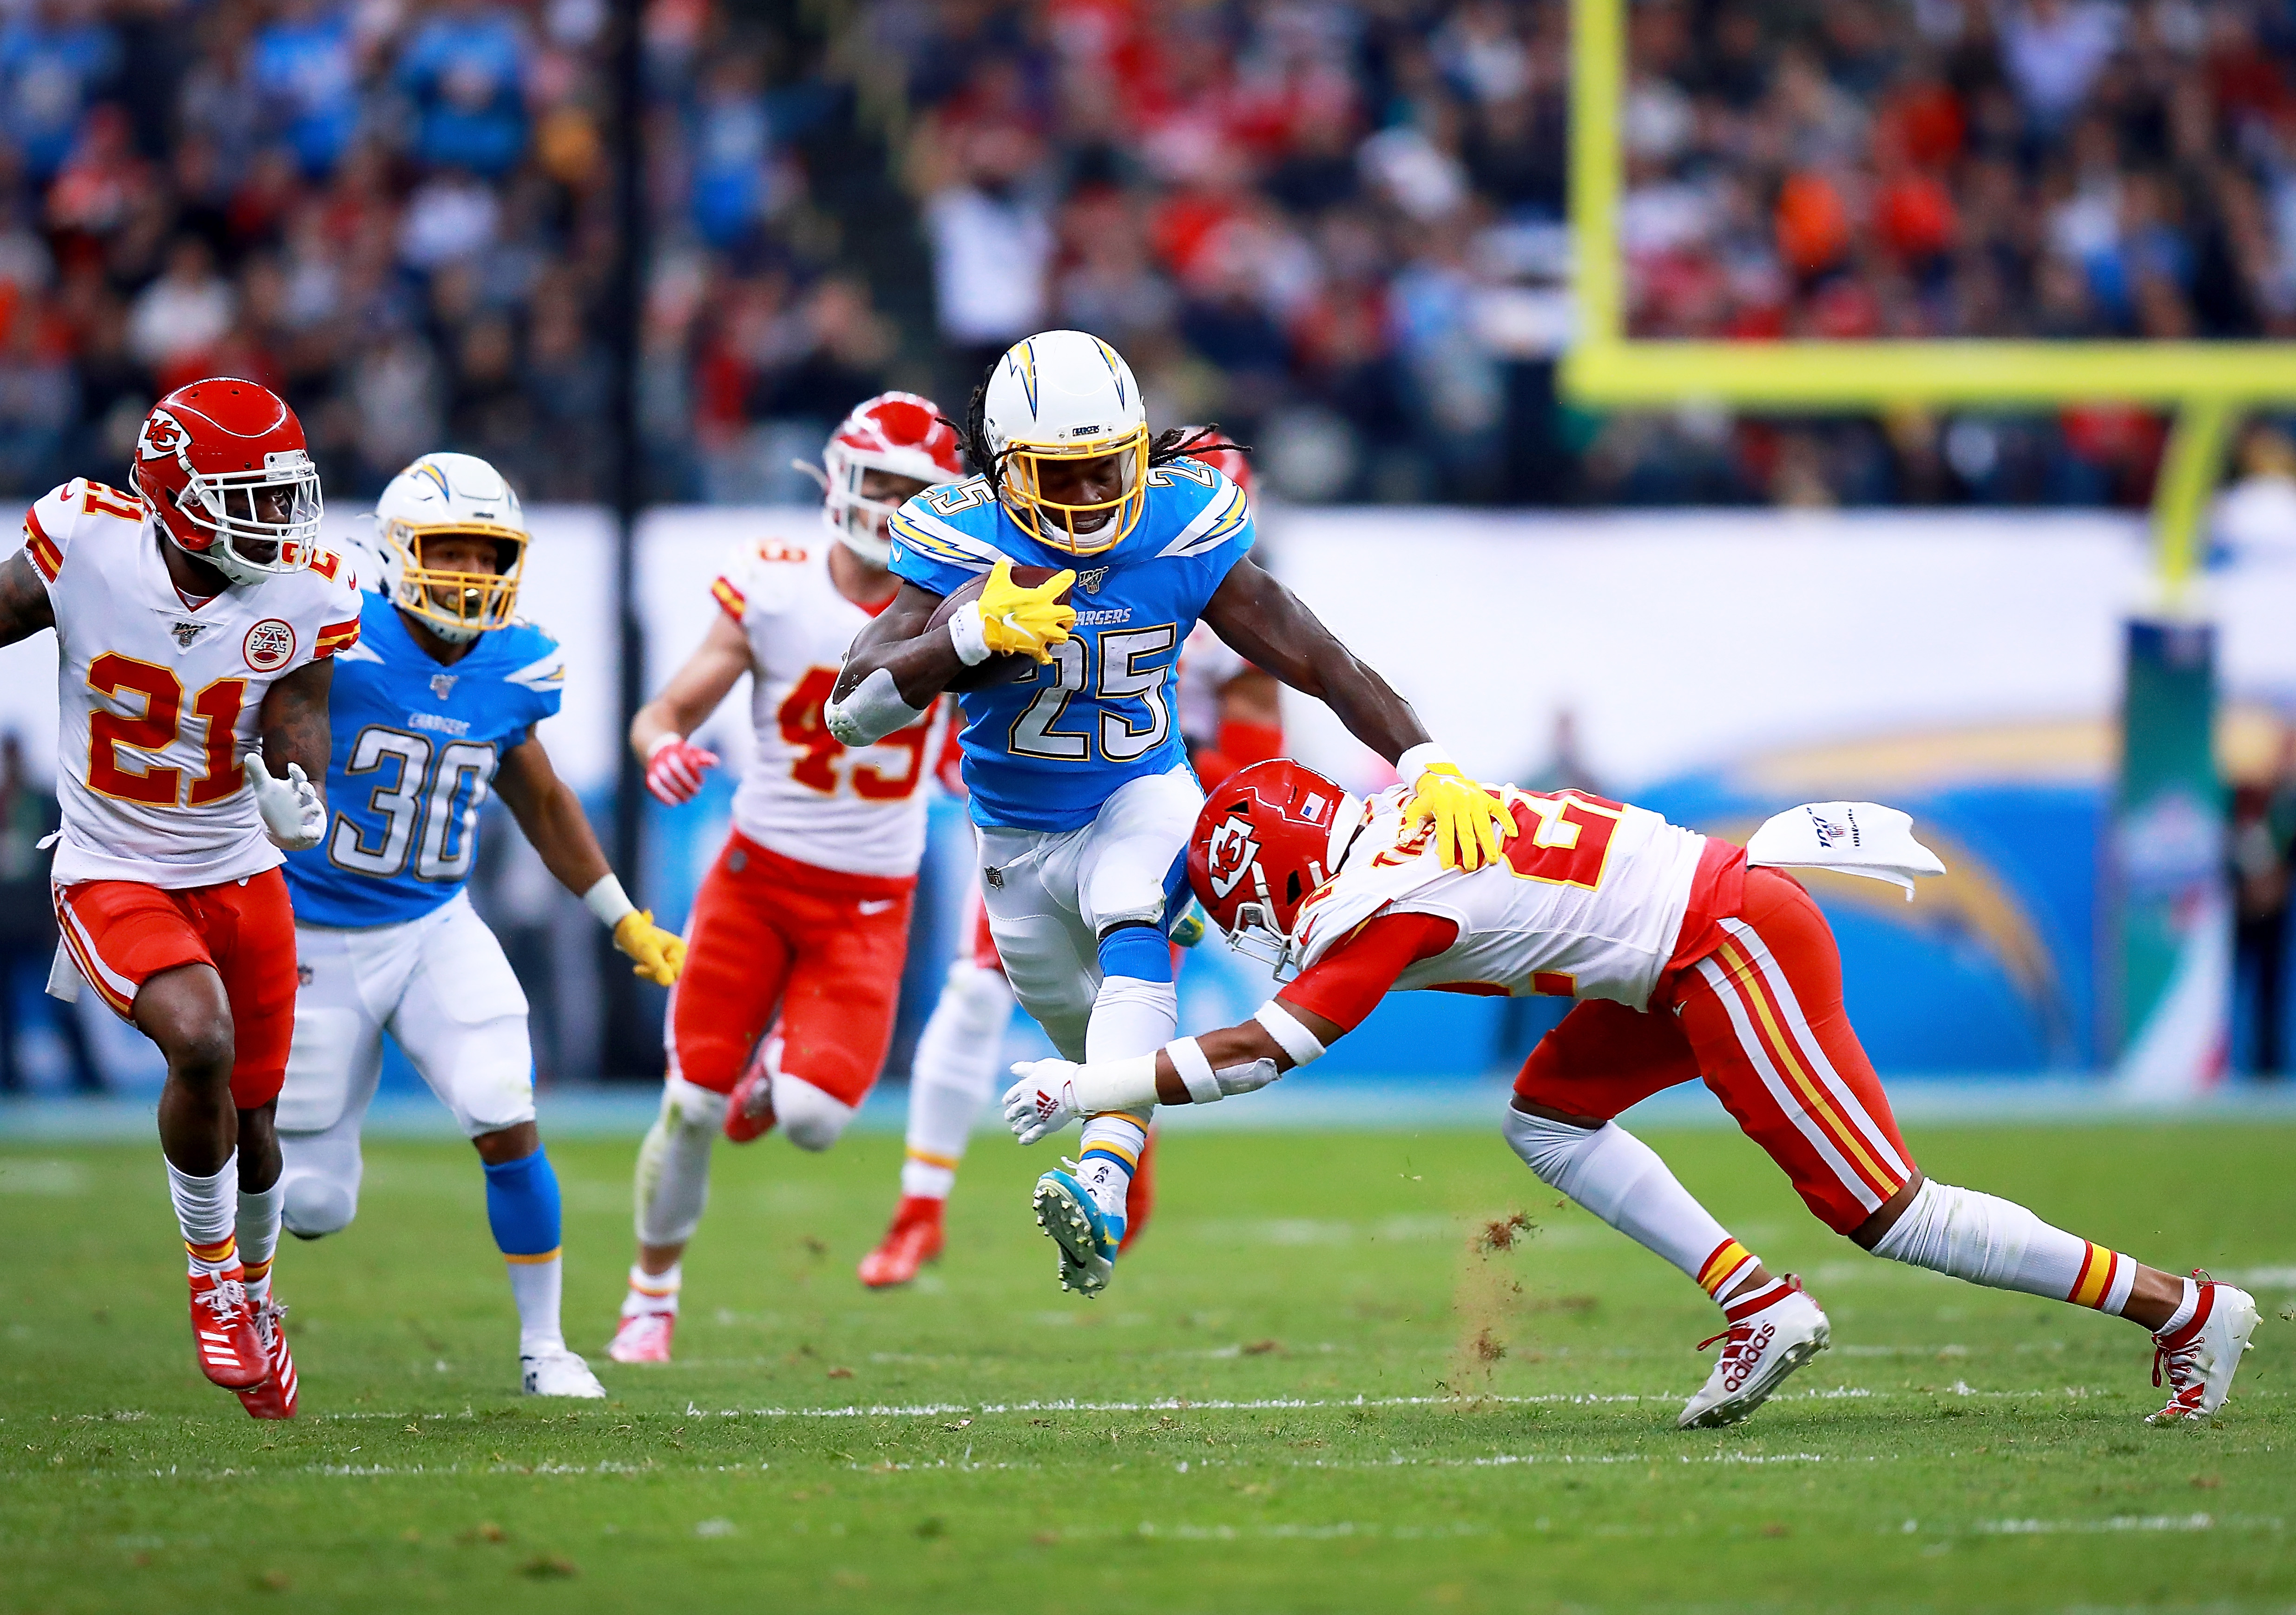 The NFL's Chargers-Chiefs game in Mexico City has a turf problem, again